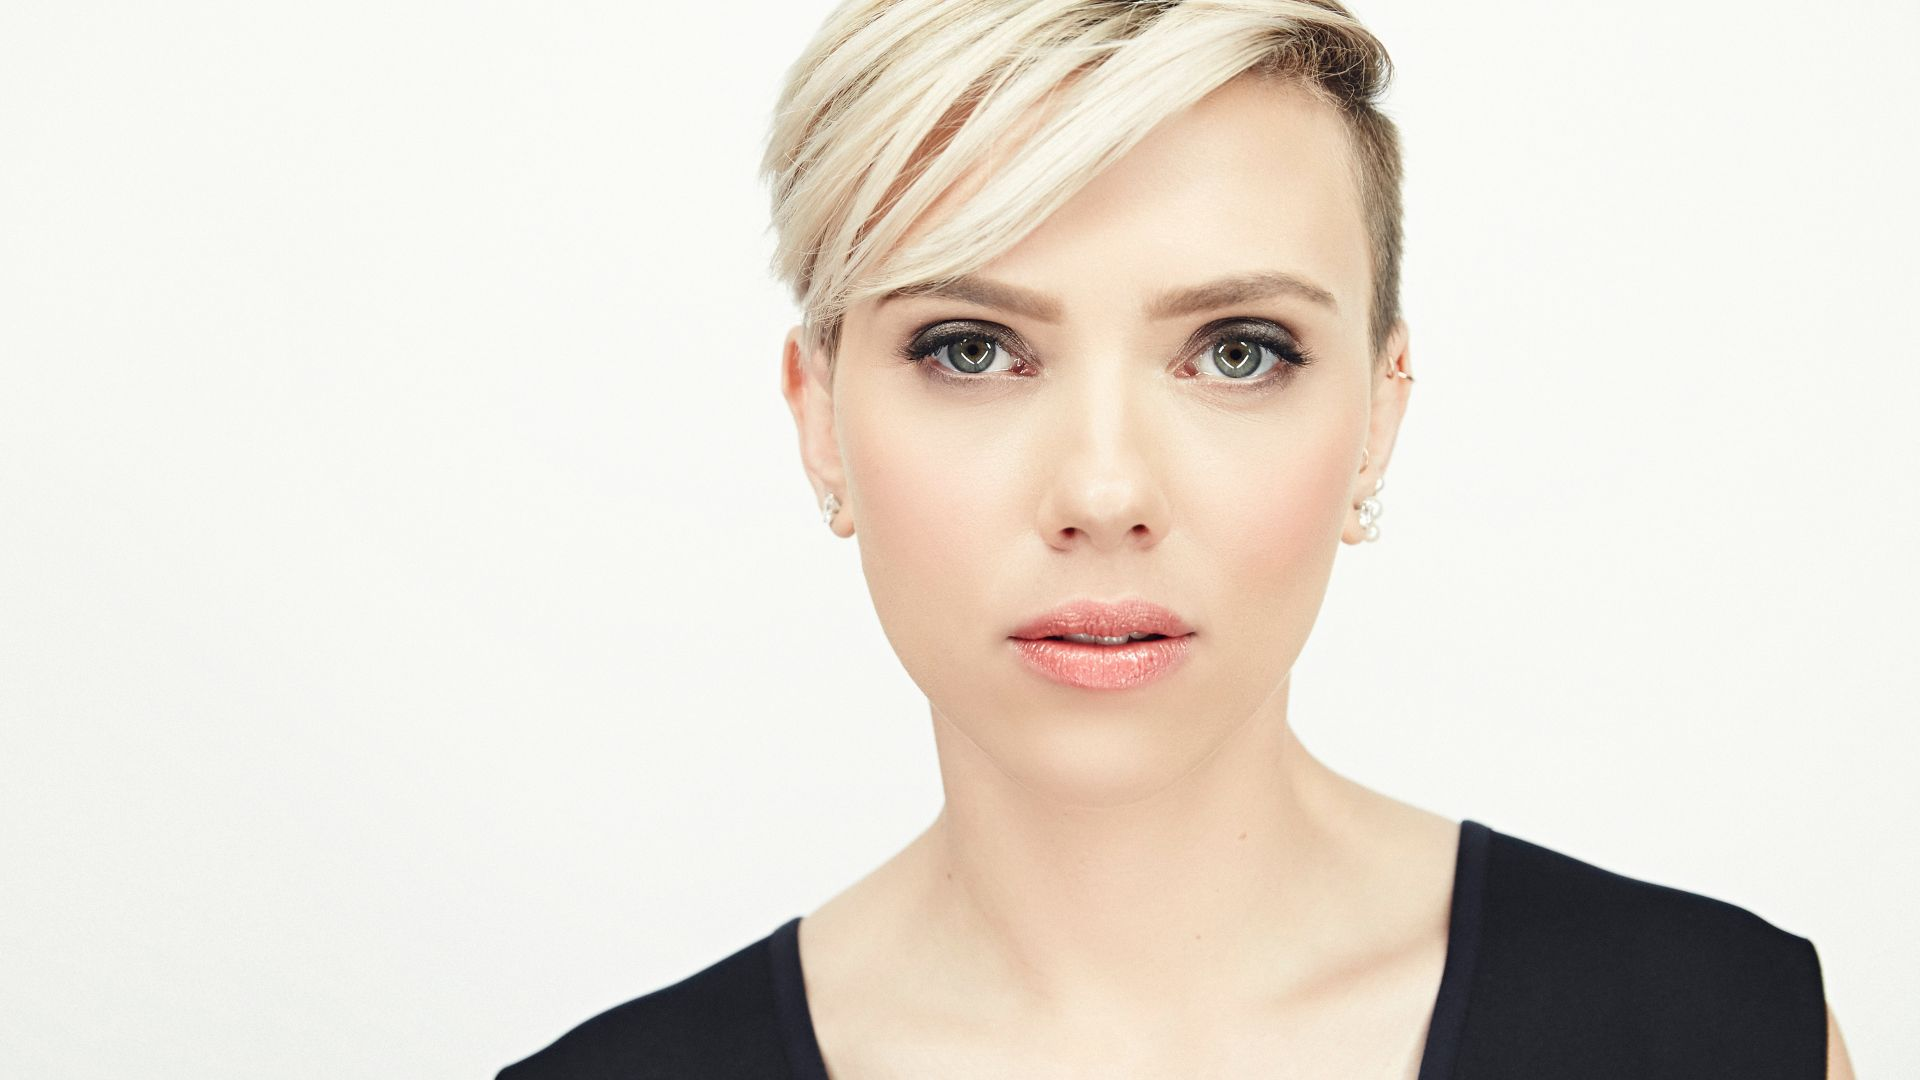 Скарлетт Йоханссон, Scarlett Johansson, actress, 4K (horizontal)